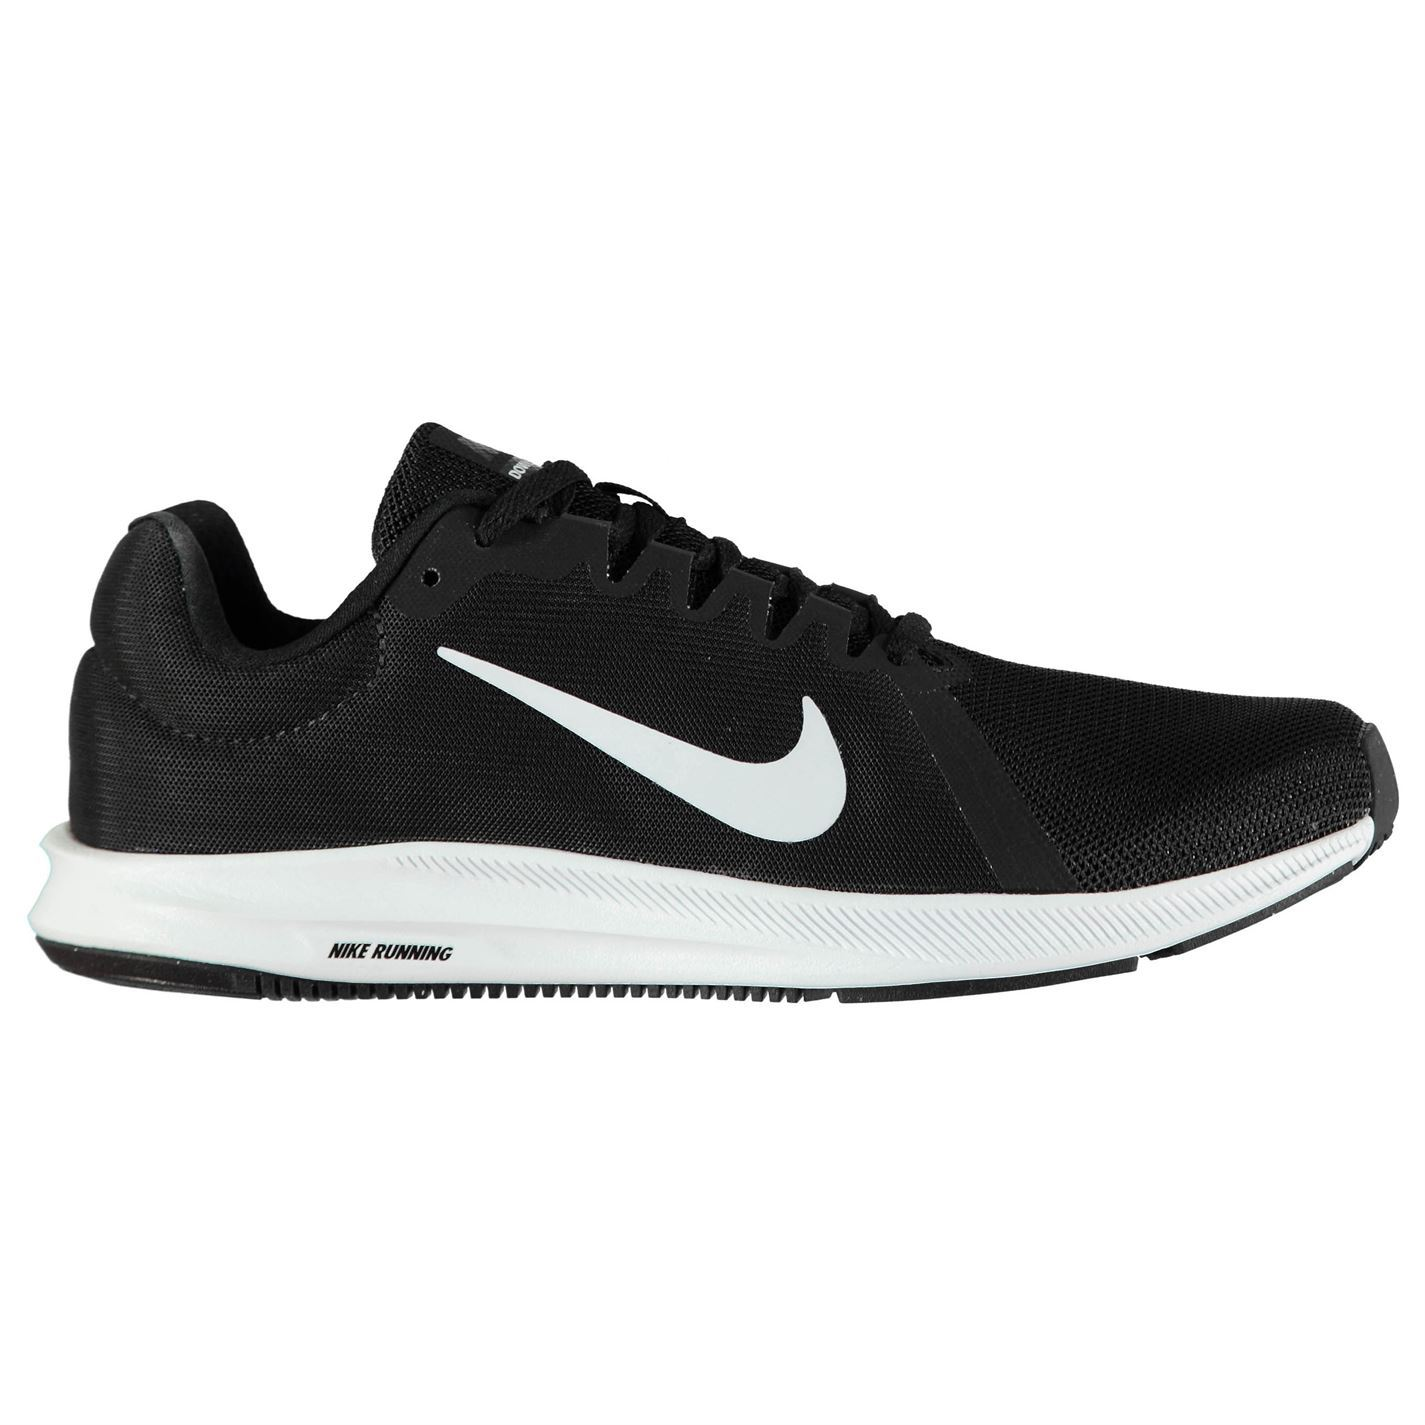 75eb81531f92 ... Nike Downshifter 8 Running Shoes Mens Black White Jogging Trainers  Sneakers ...